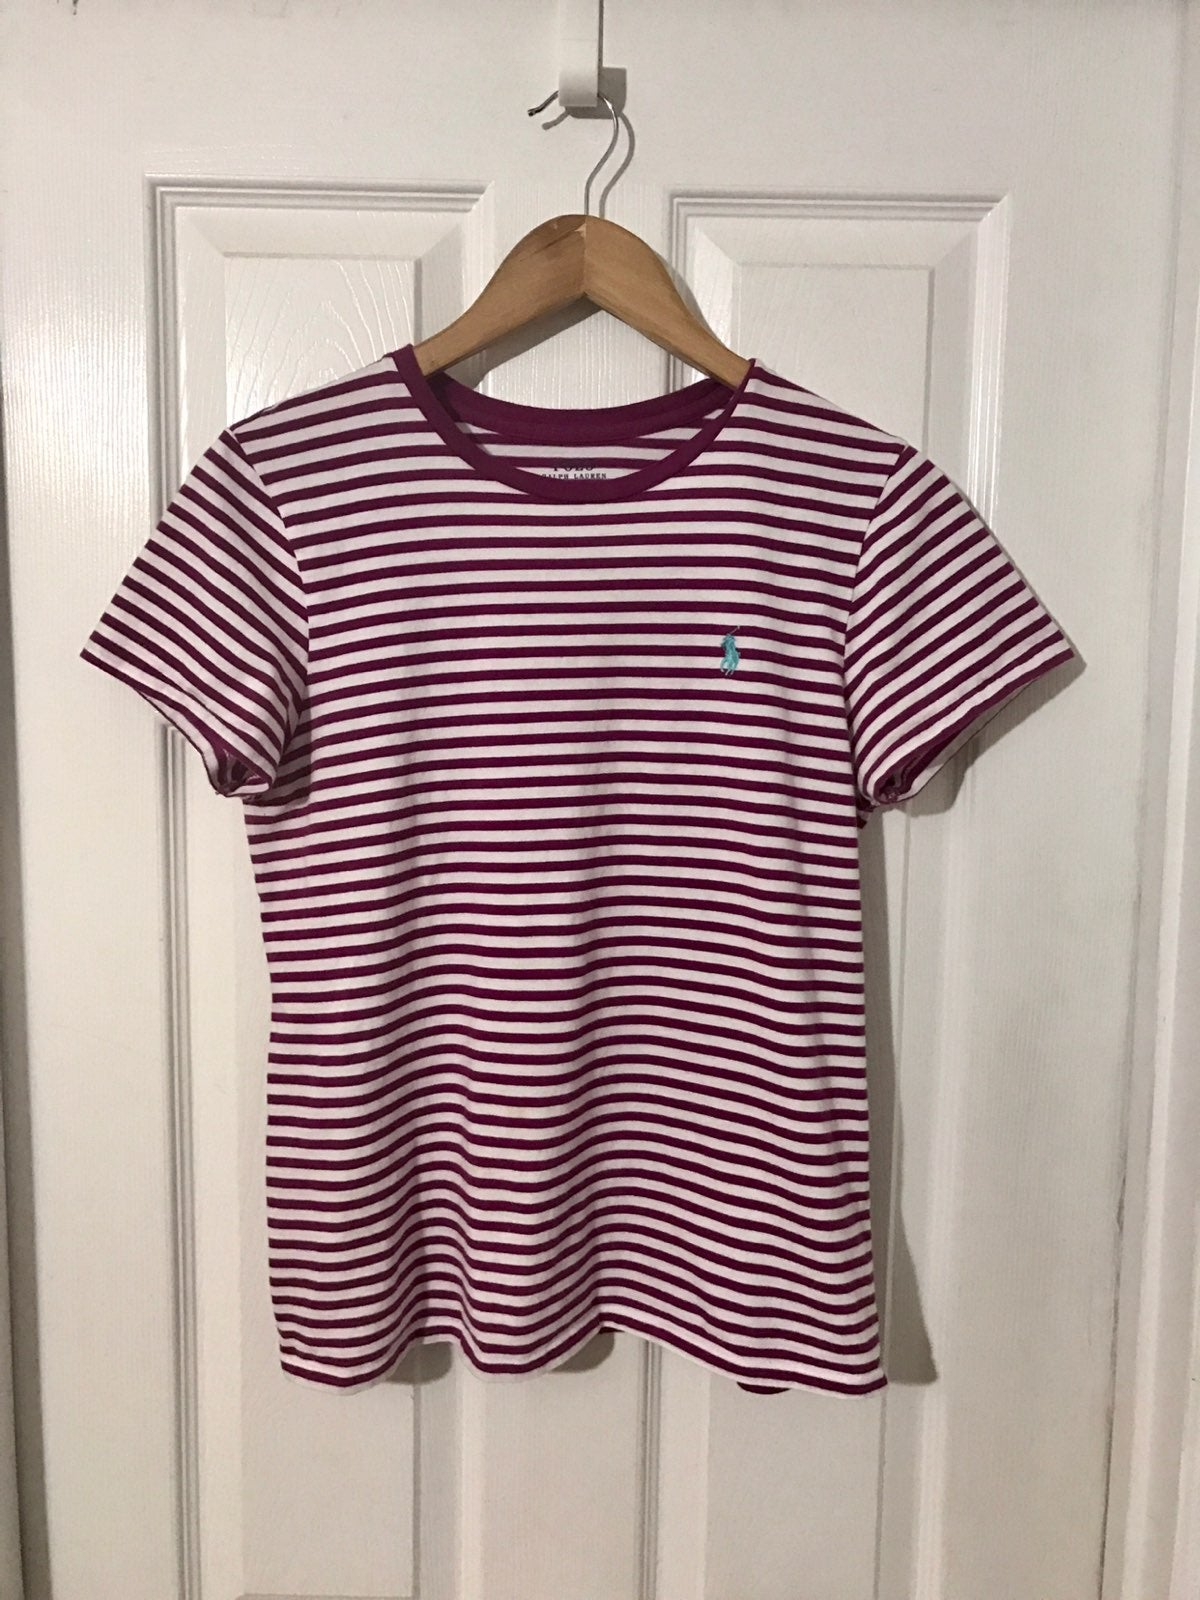 Polo Ralph Lauren Pink/white Shirt Large